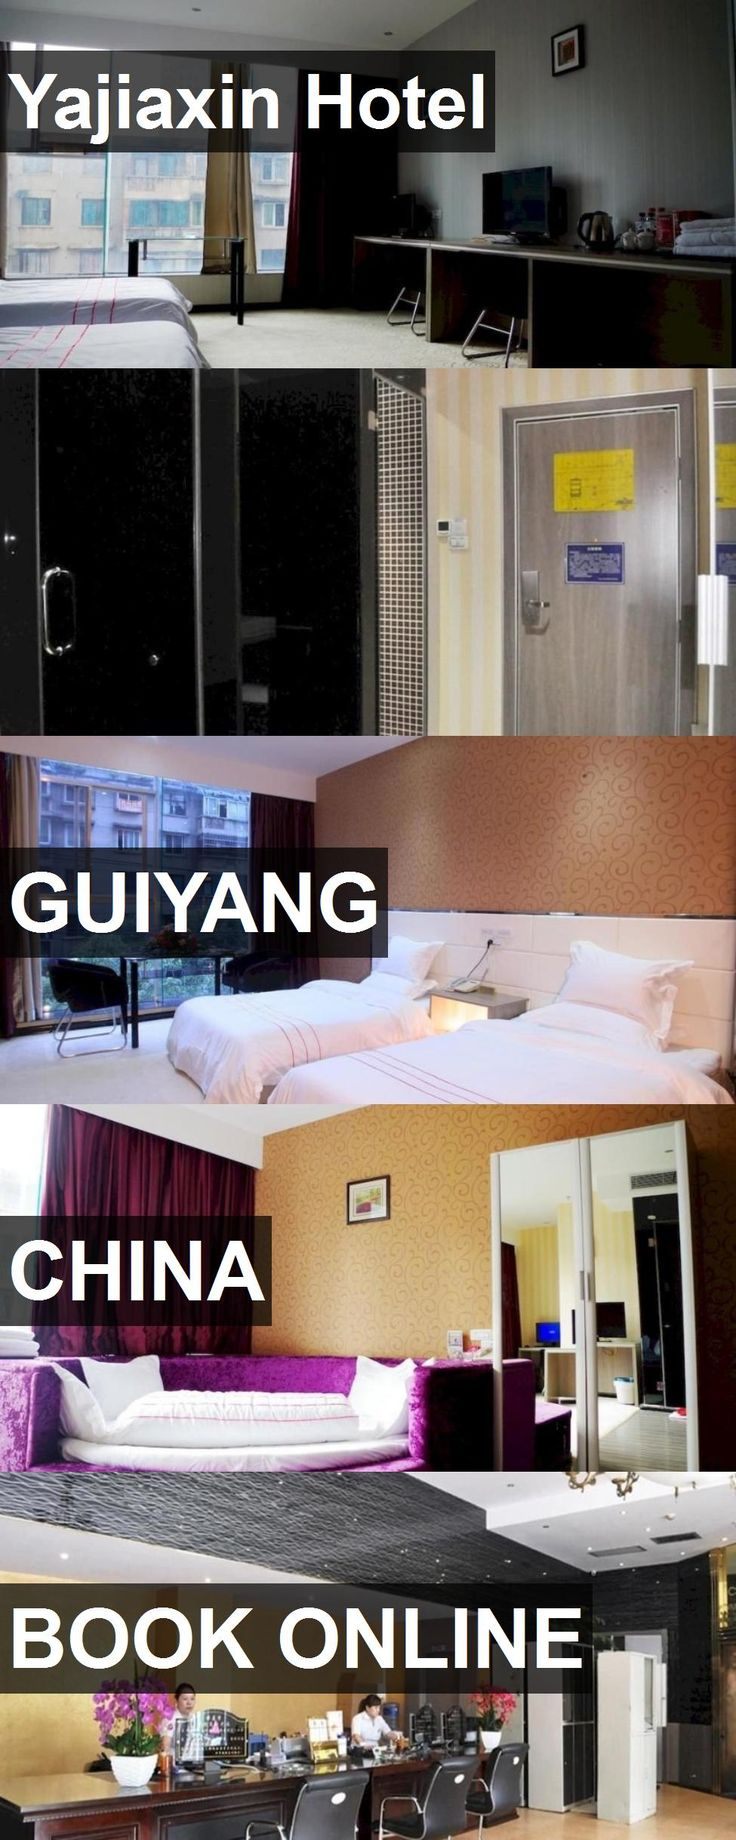 Hotel Yajiaxin Hotel in Guiyang, China. For more information, photos, reviews and best prices please follow the link. #China #Guiyang #YajiaxinHotel #hotel #travel #vacation